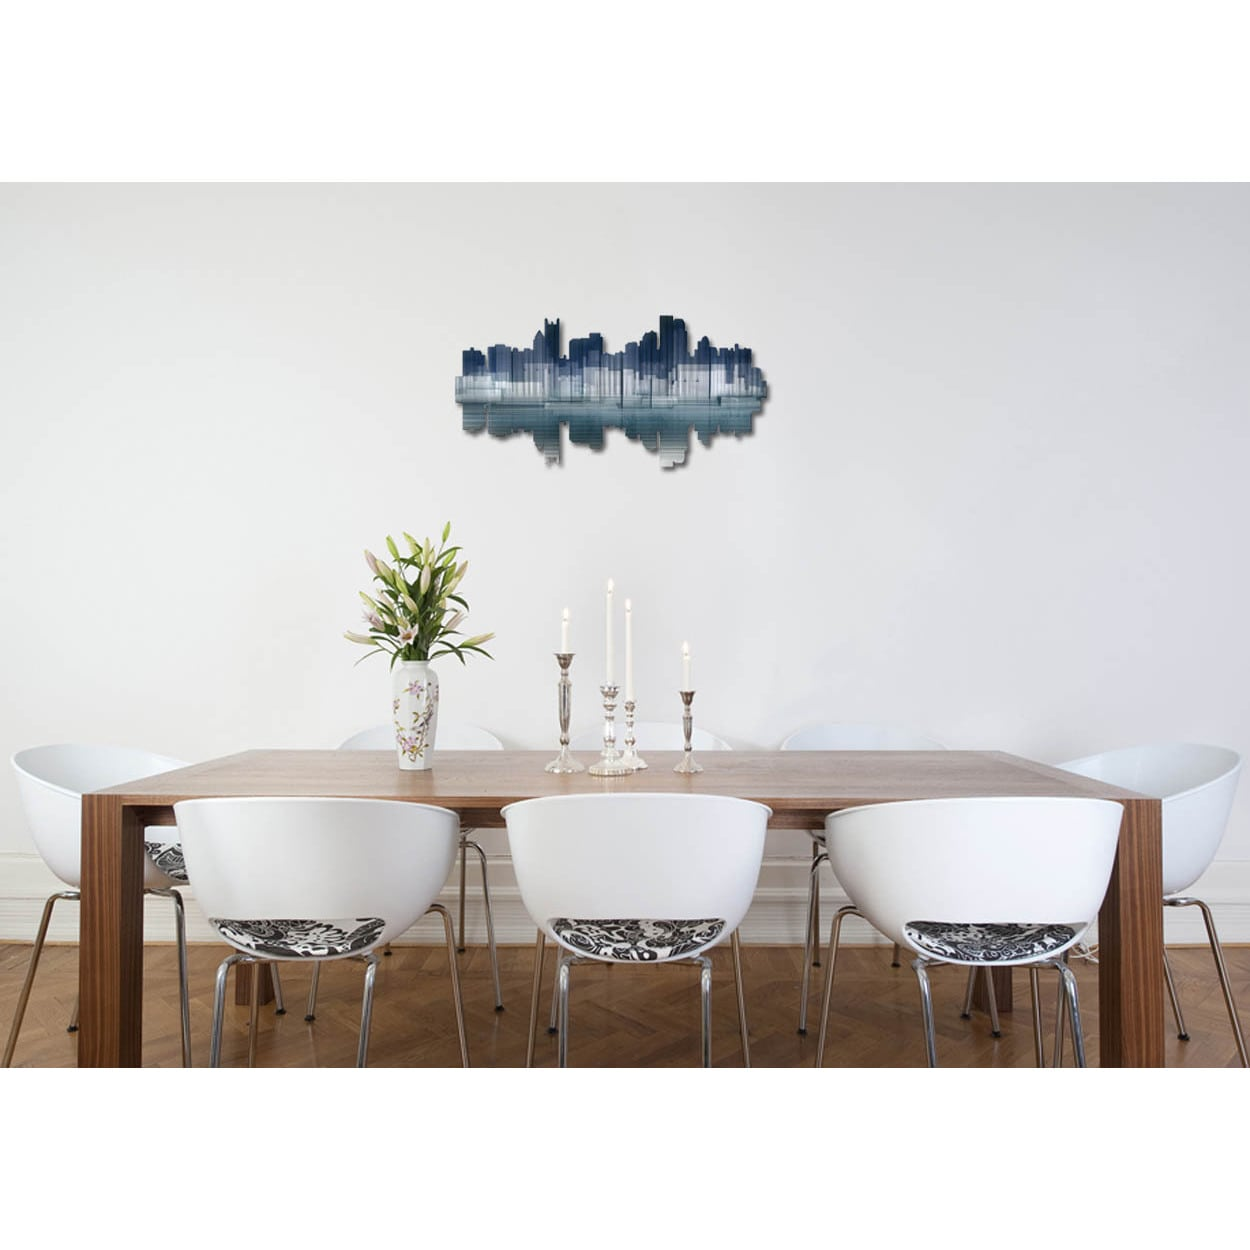 Ash Carl u0027San Diego Reflectionu0027 Metal Wall Art - Free Shipping Today - Overstock - 19769941  sc 1 st  Overstock.com & Ash Carl u0027San Diego Reflectionu0027 Metal Wall Art - Free Shipping Today ...